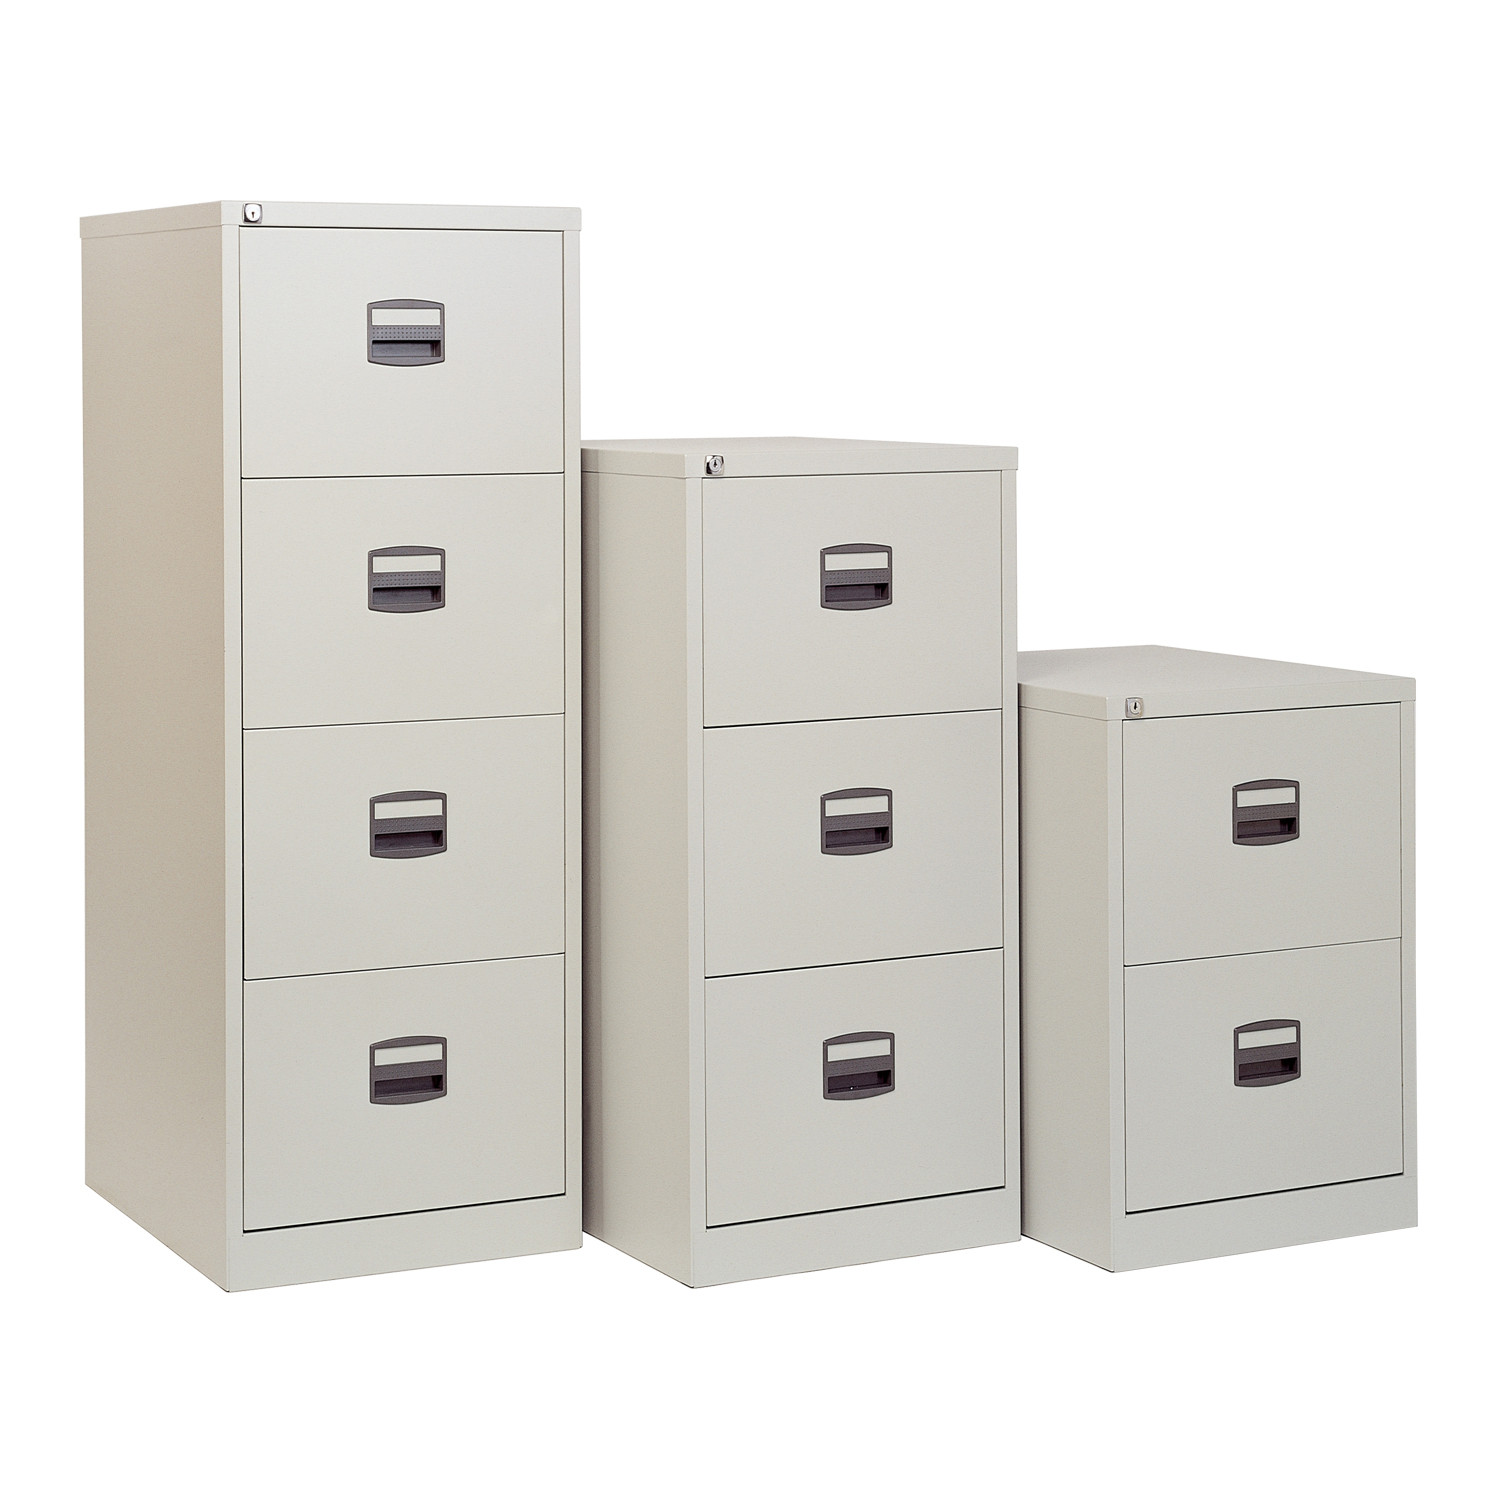 Contract Filing Cabinets  2, 3 and 4 drawer heights